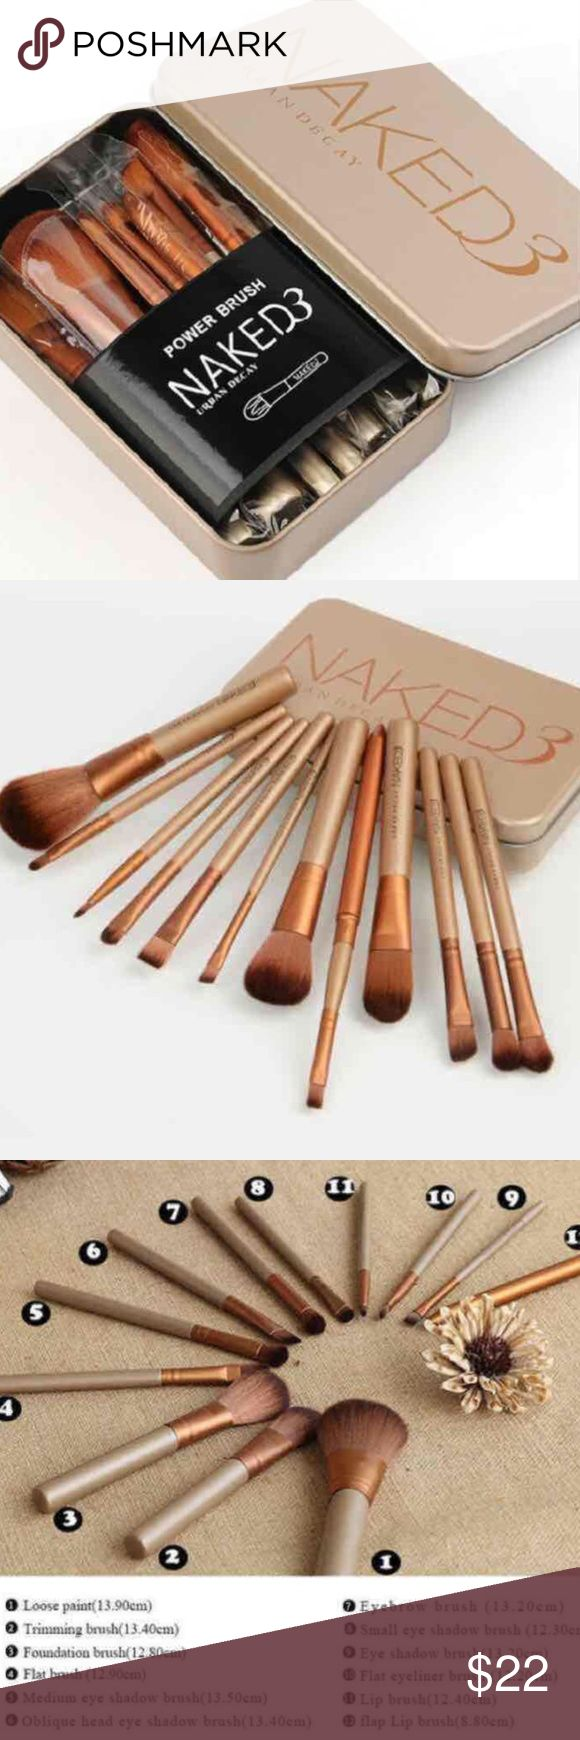 12pcs naked professional makeup brushes set 100% BRAND NEW Never been used  Sold Out on Website I always do my packages with bubbles wraps and best secure as possible  FAST SHIPPING Makeup Brushes & Tools